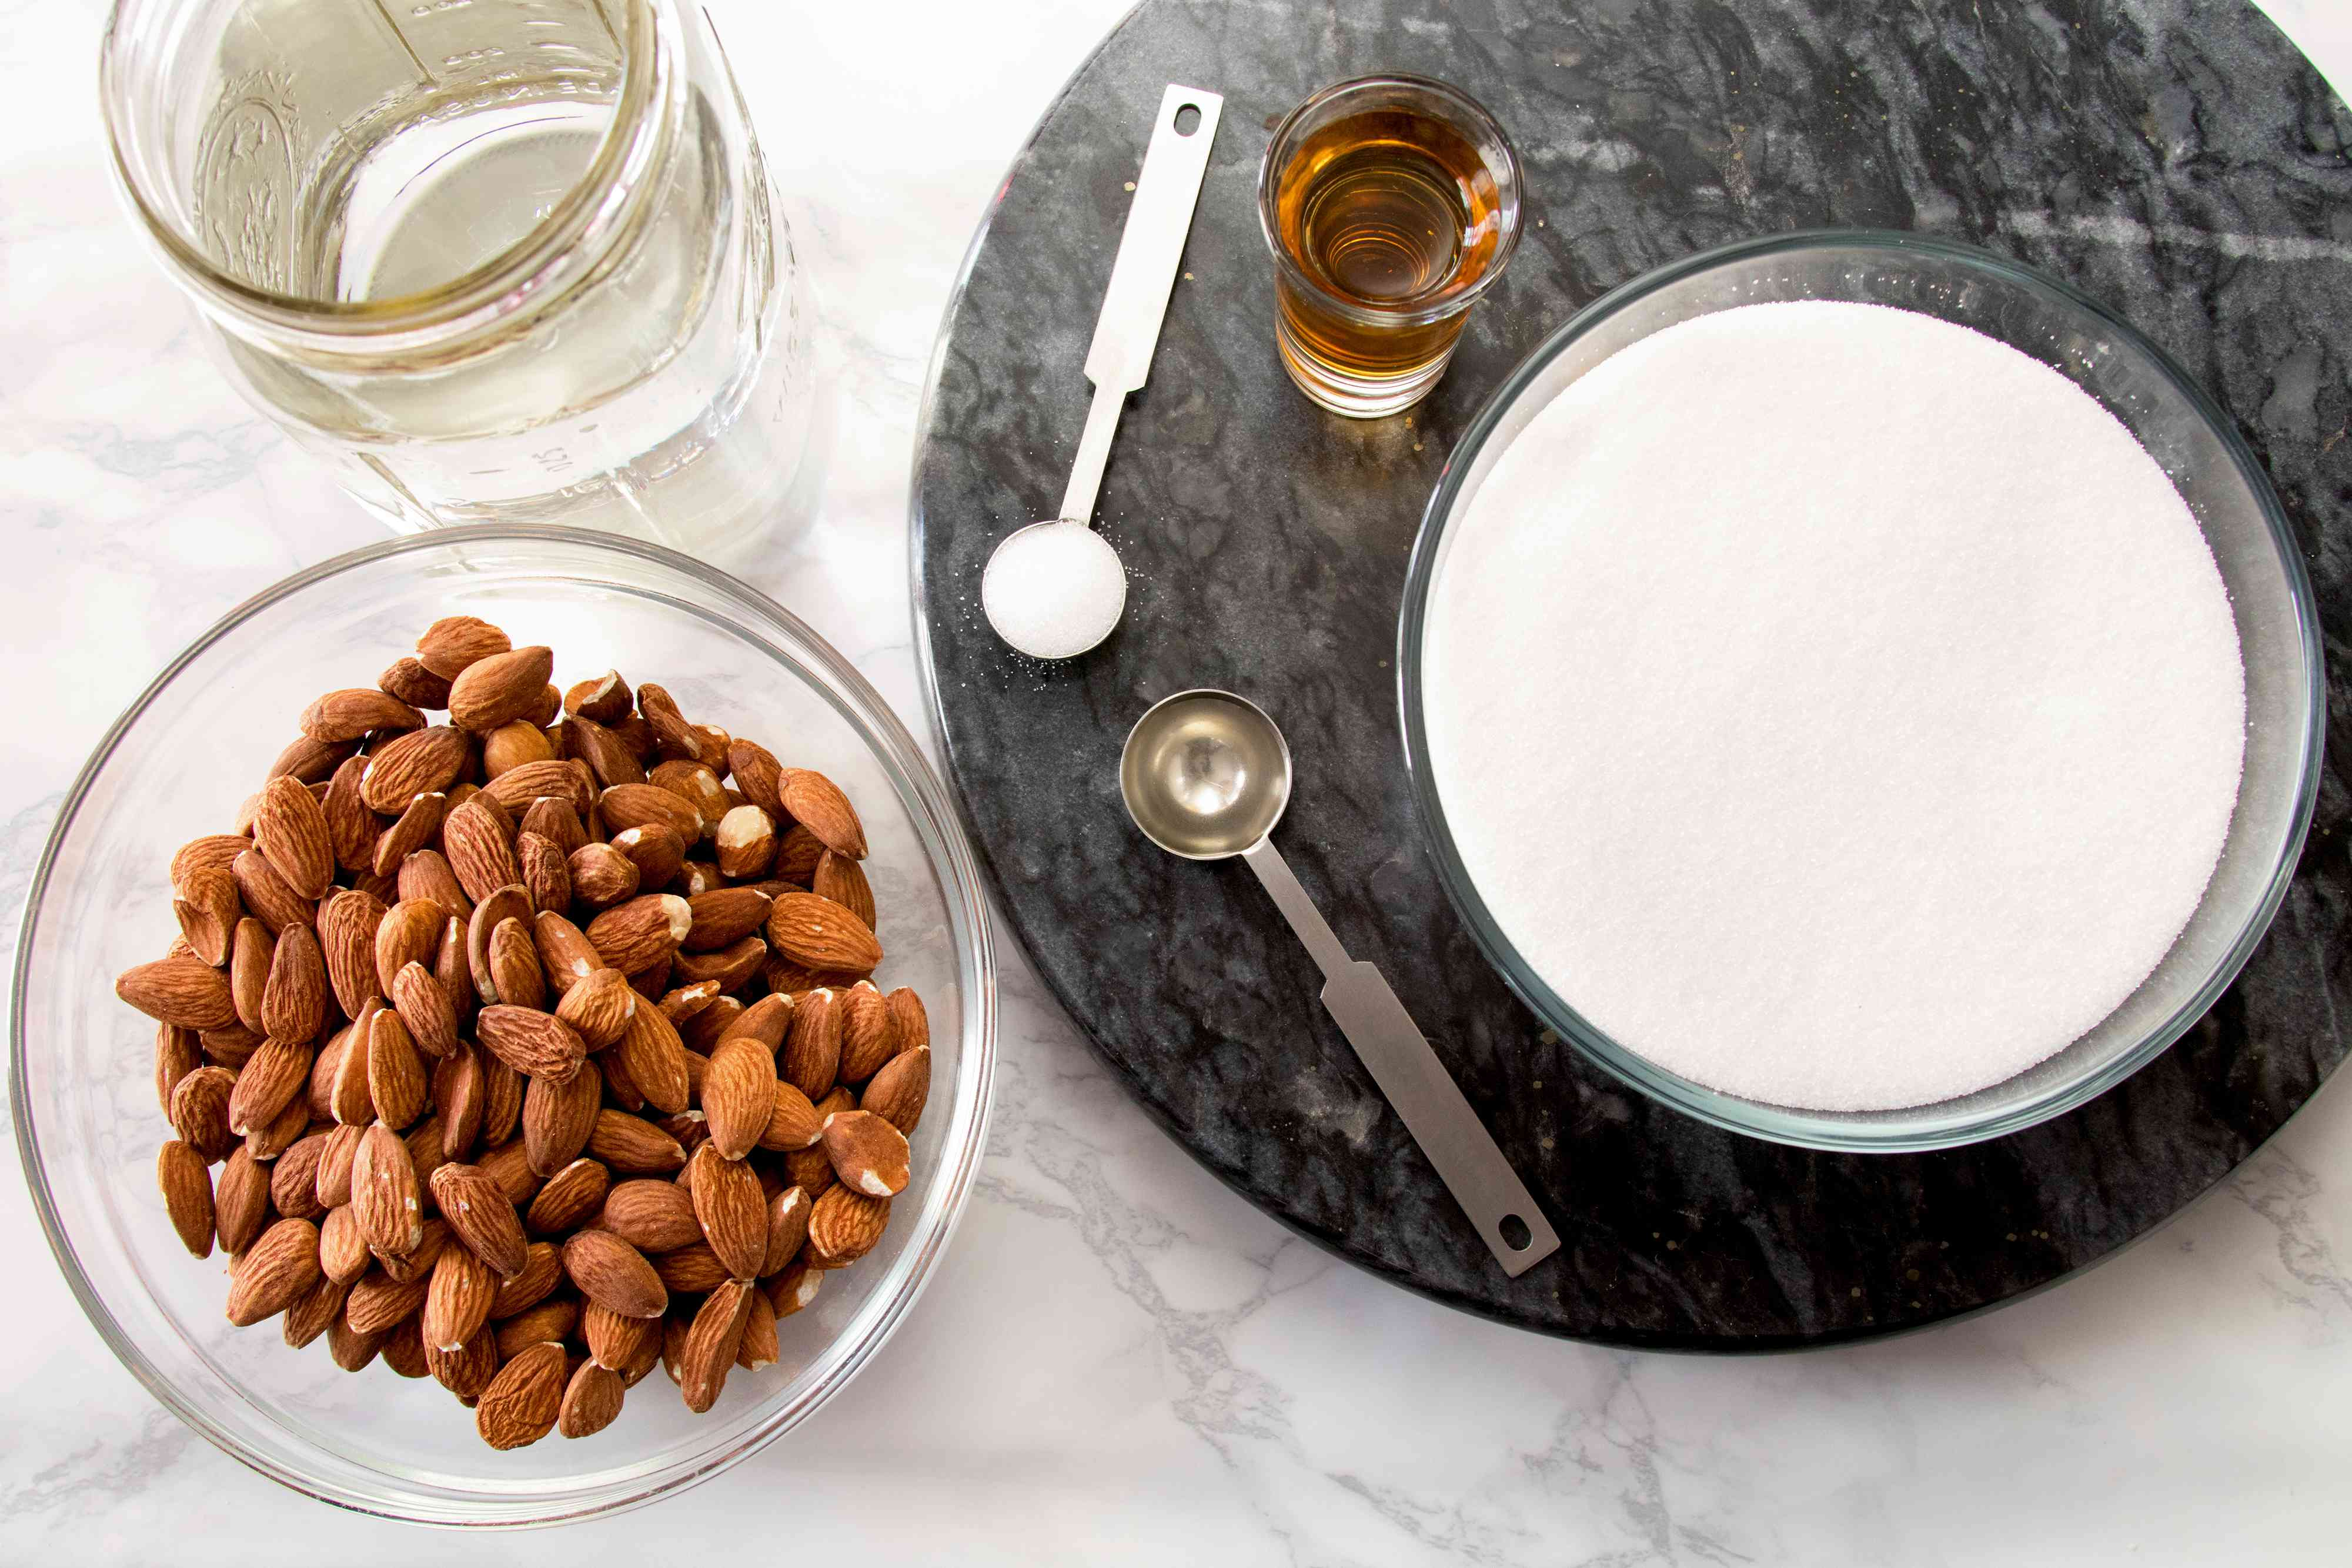 Ingredients for Homemade Orgeat Syrup